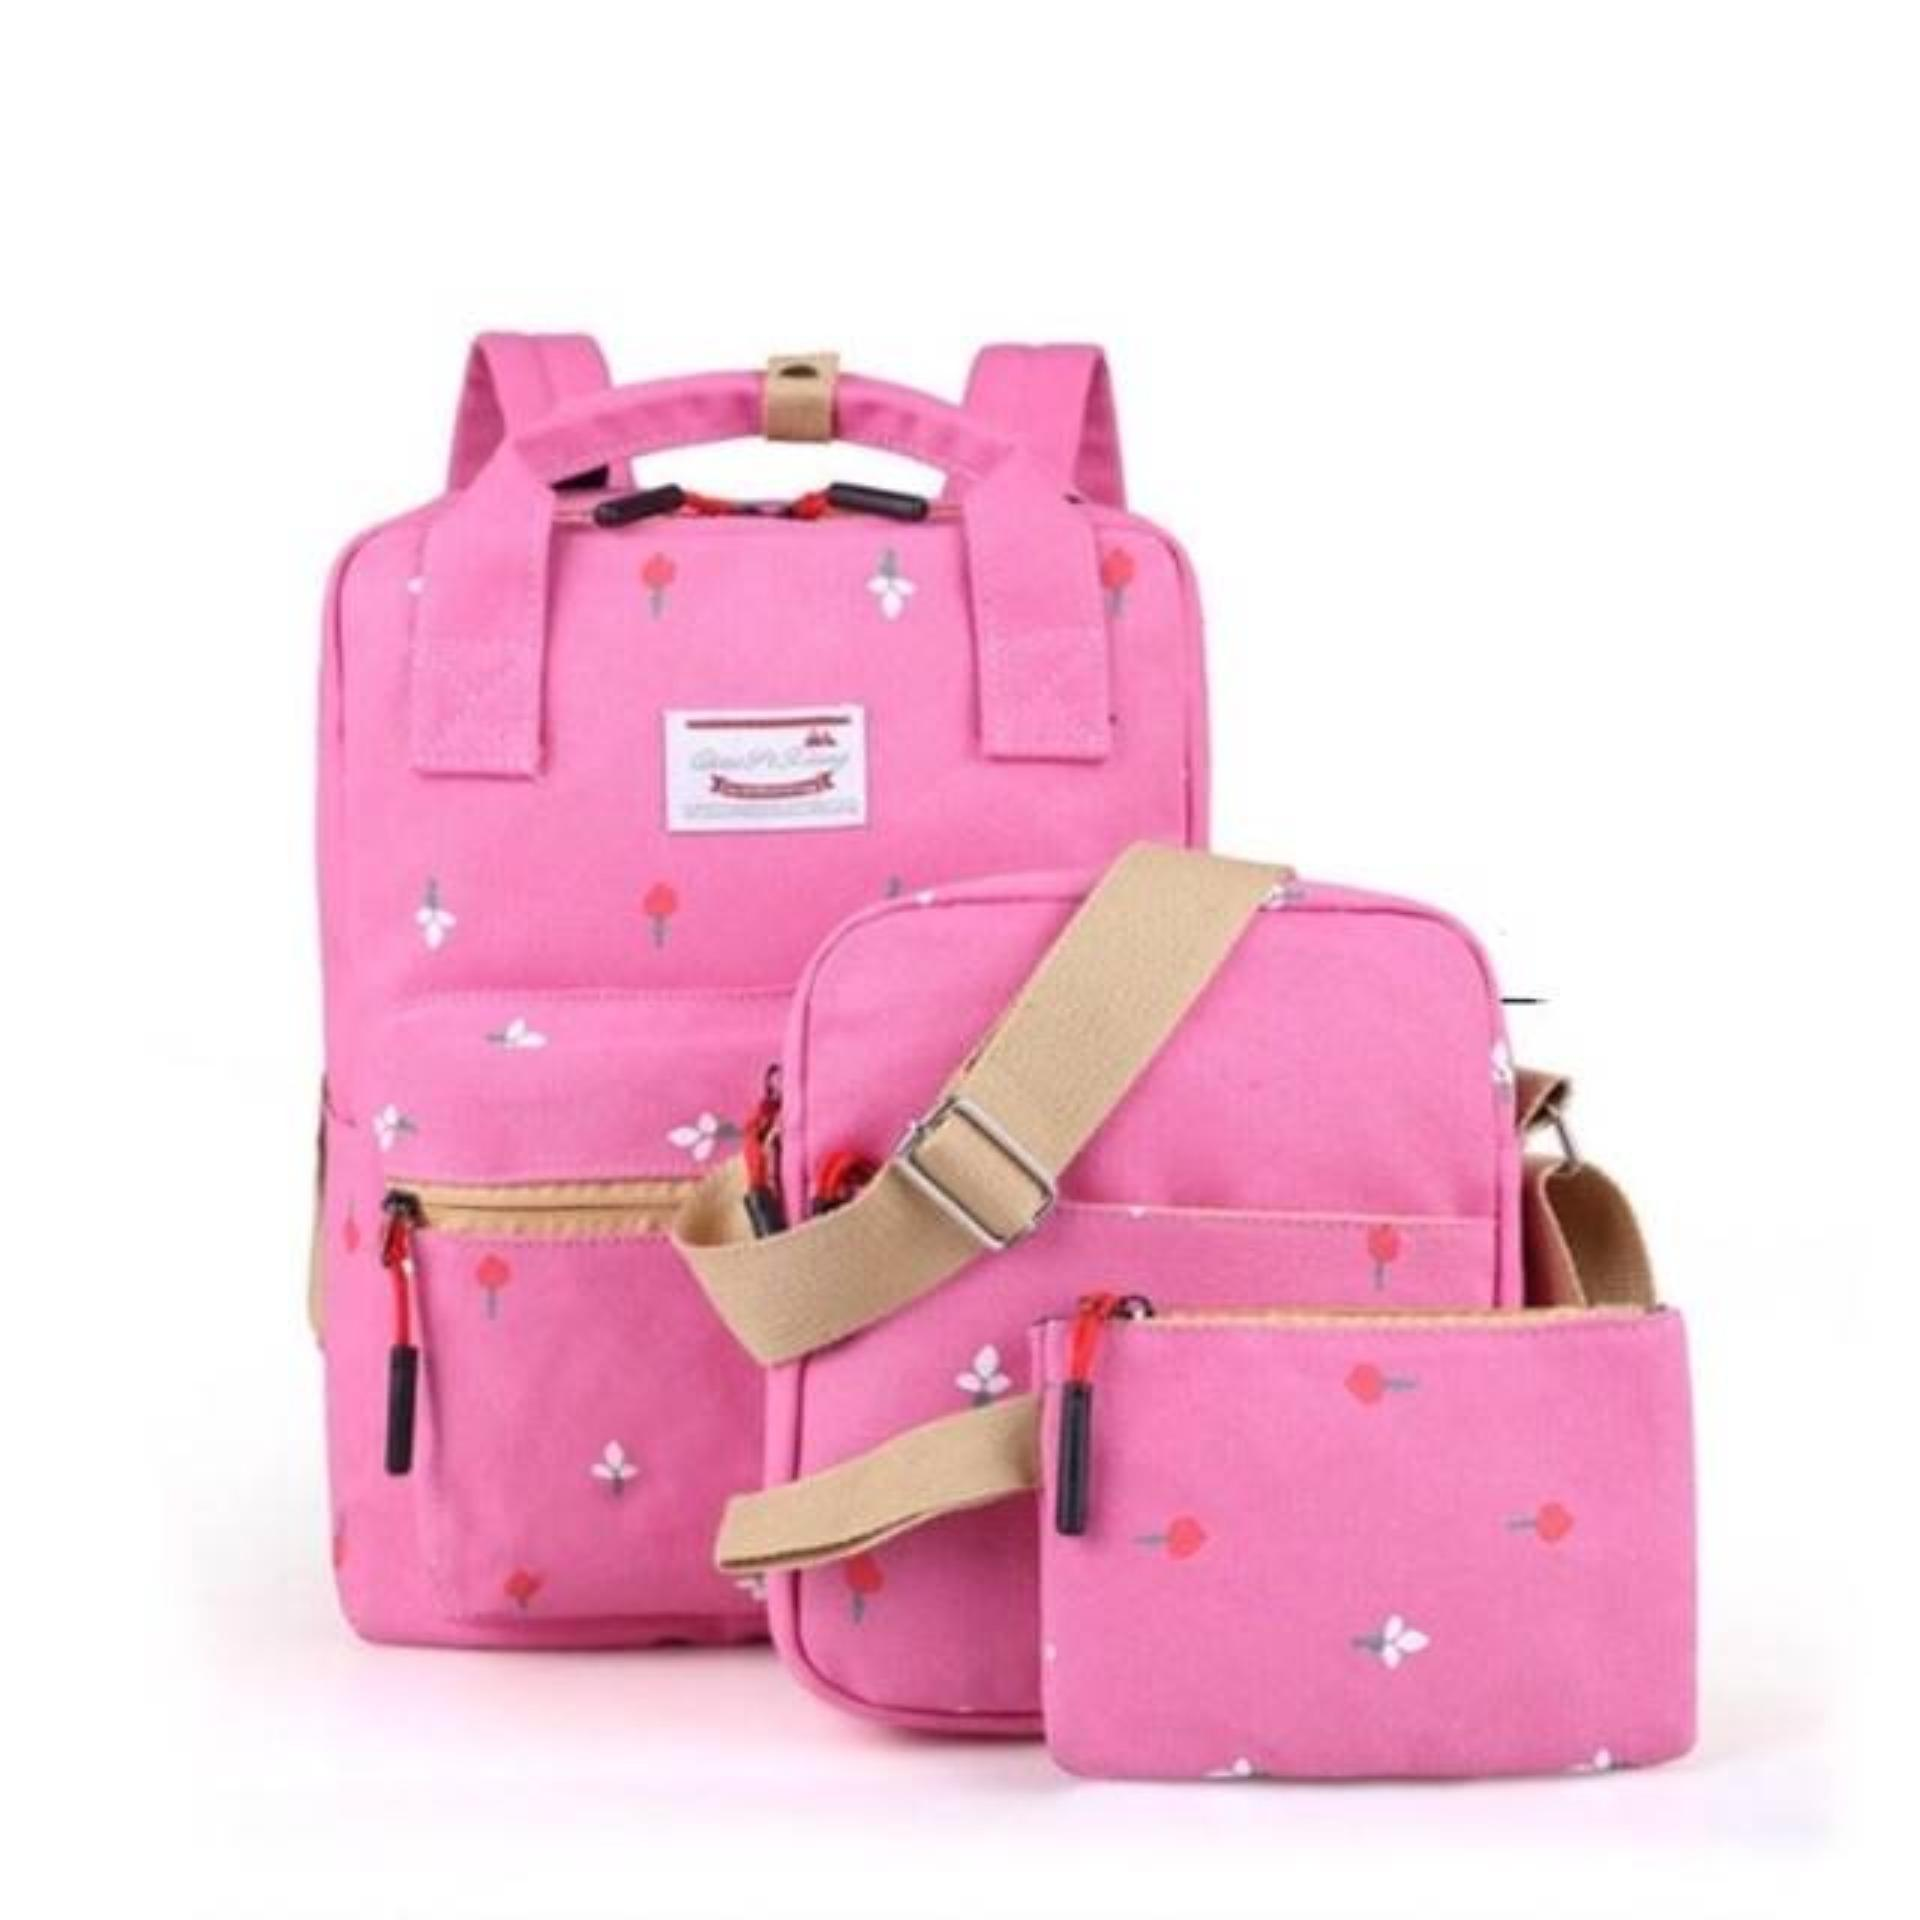 SEPATUBANDUNG_ Backpack Maya Tas Ransel Wanita. Source · BACKPACK FASHION TULIP JINJING